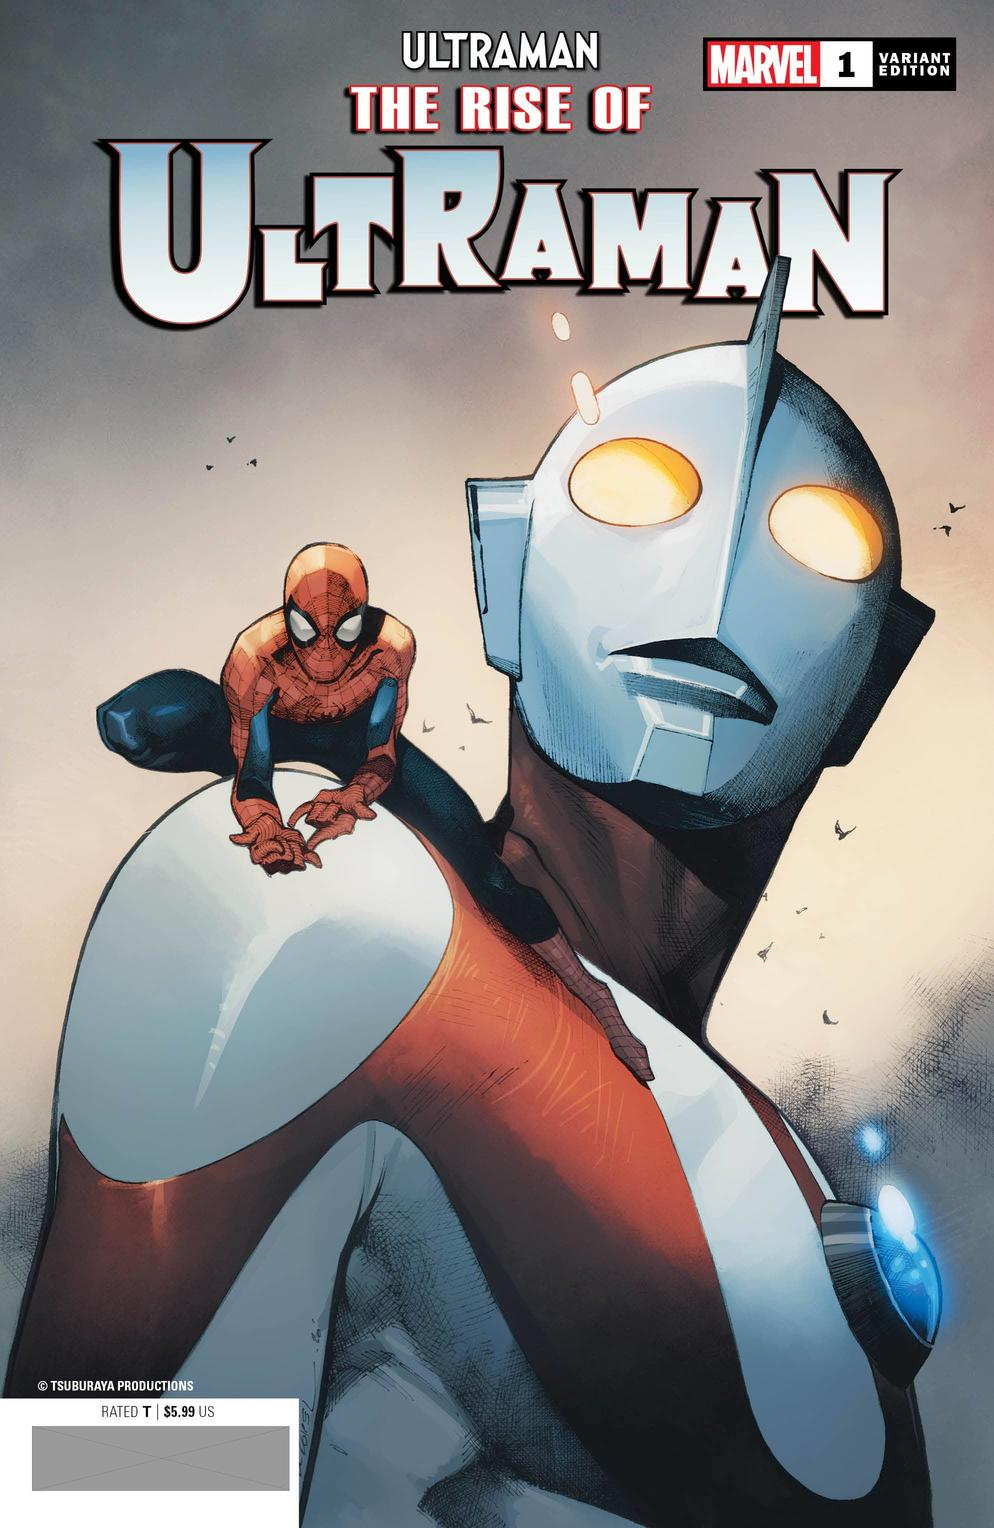 THE RISE OF ULTRAMAN #1 variant cover by Olivier Coipel